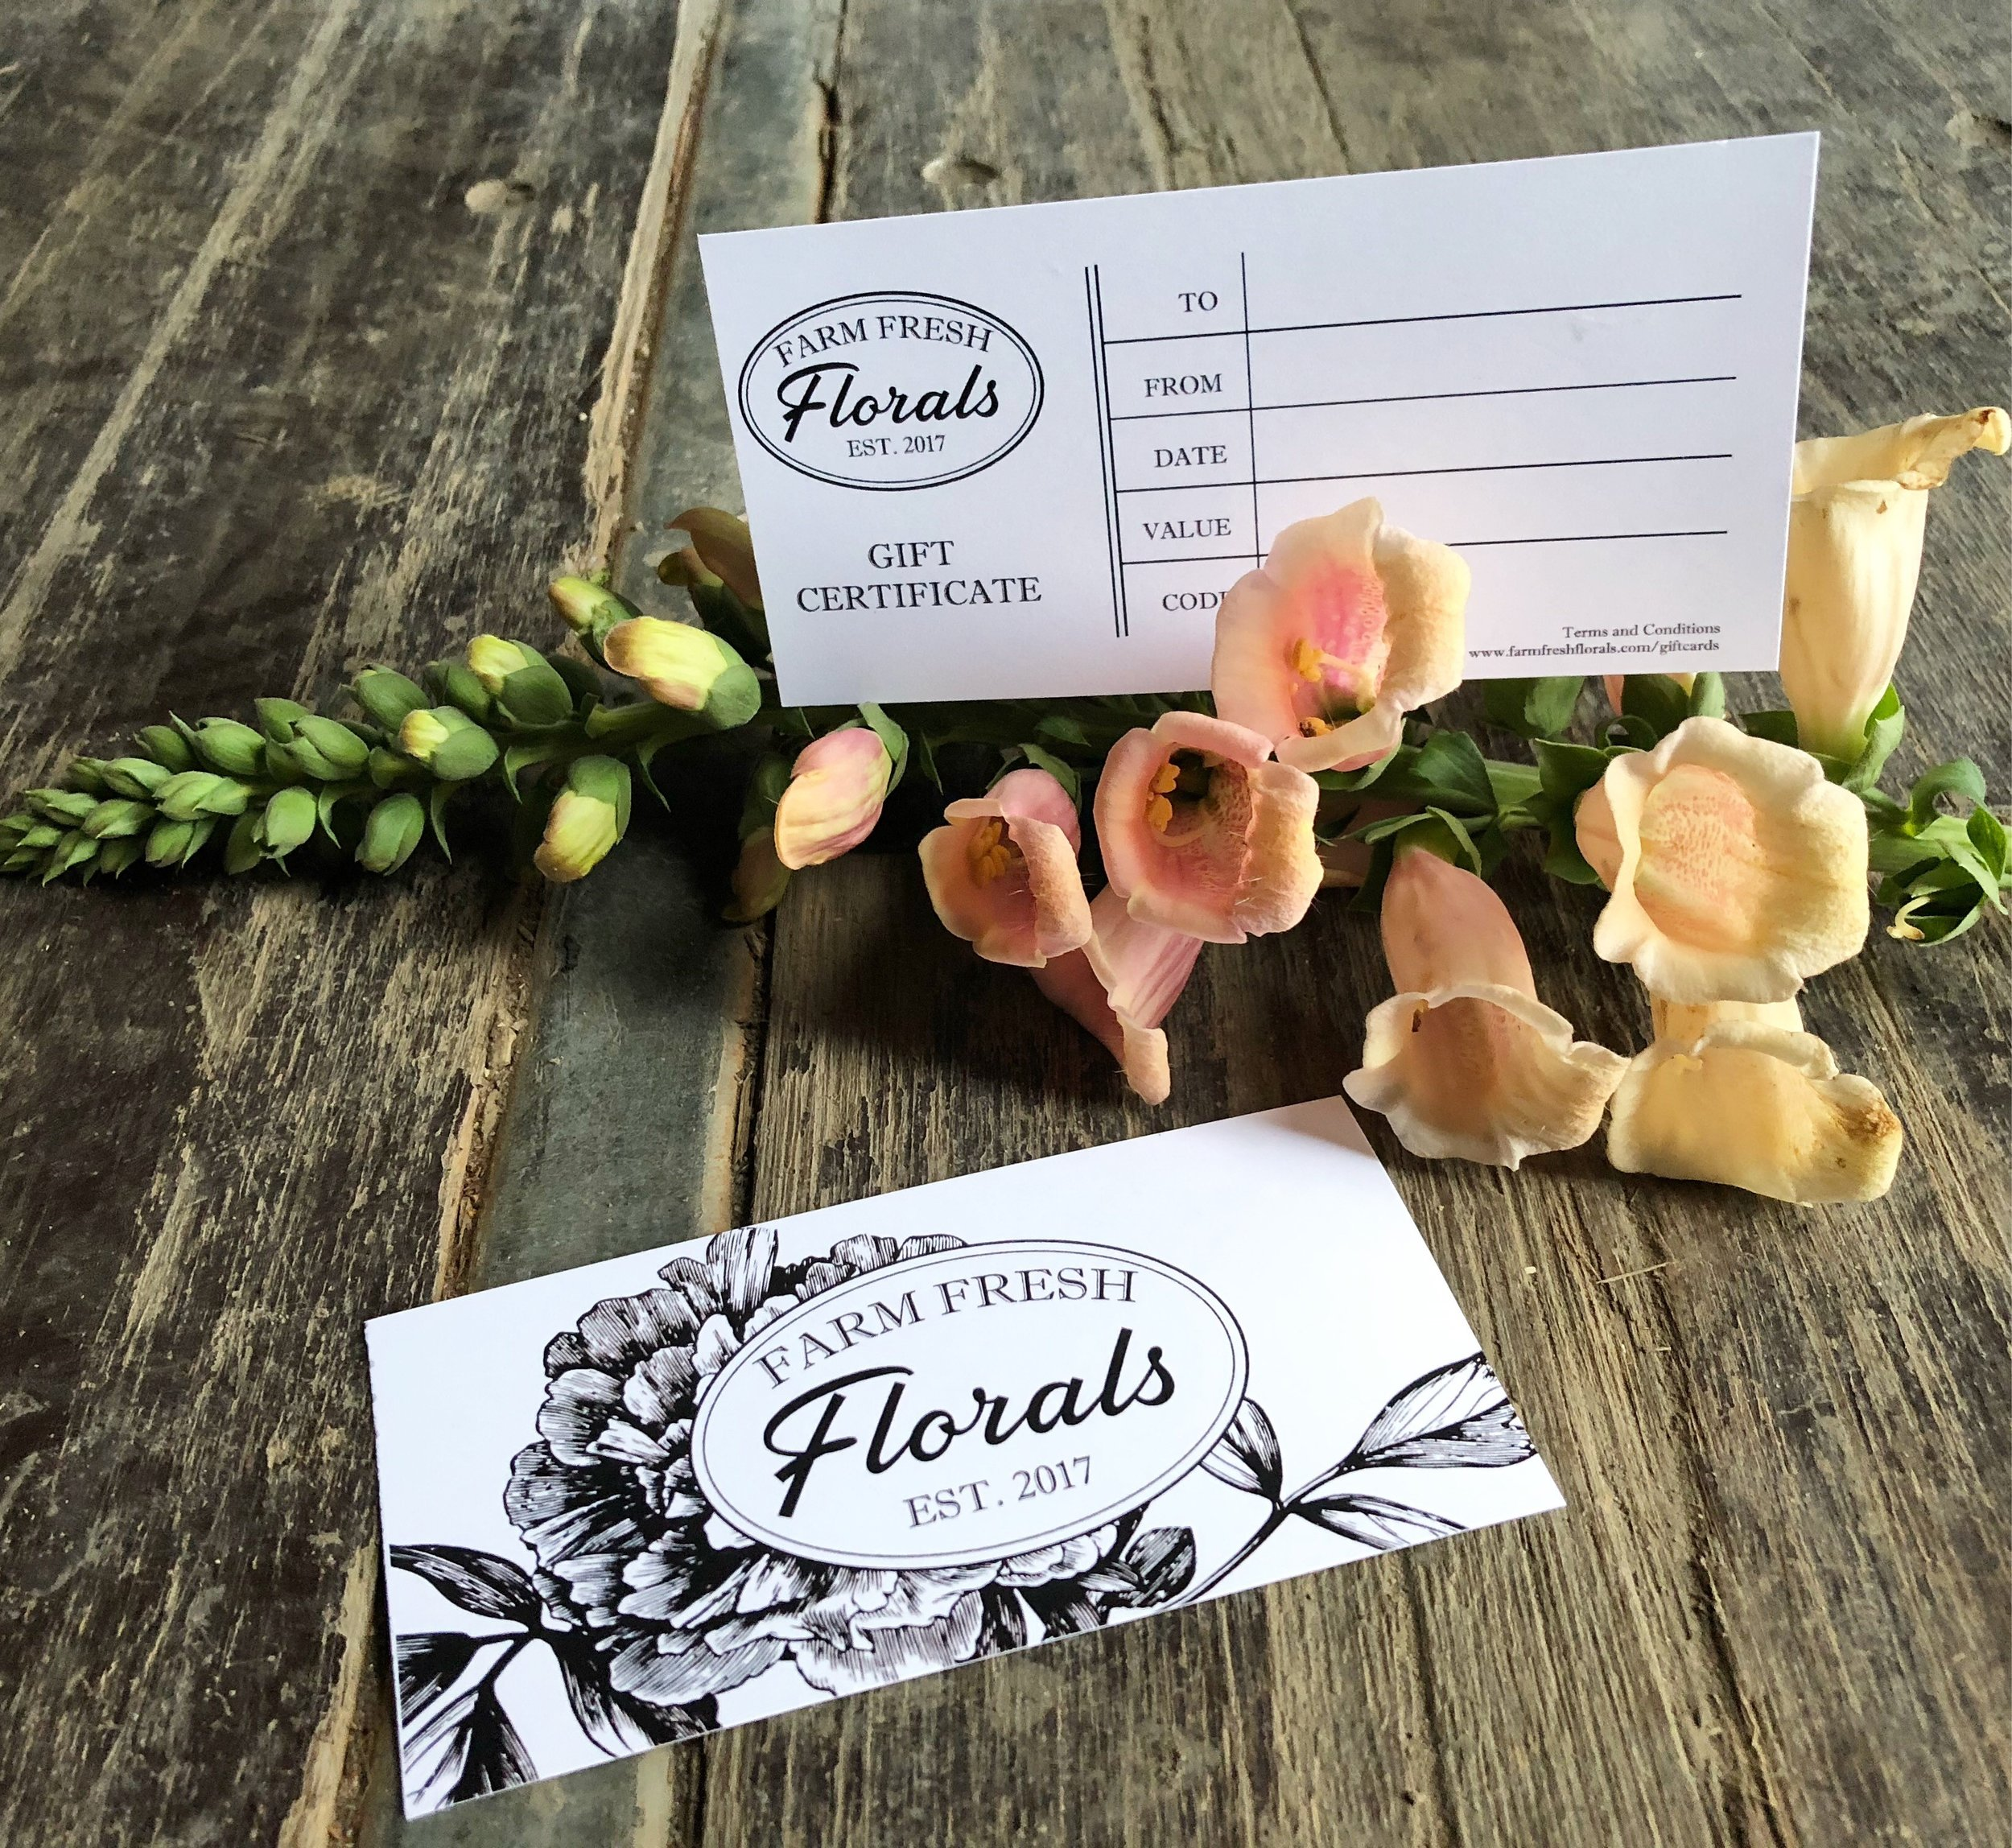 GIFT  CARDS - Farm Fresh Florals is pleased to offer Gift Cards for all occasions.Terms and Conditions:- Available in any Denomination- Can be provided Digitally or Printed- No Cash Value- Valid on all offerings at Farm Fresh Florals (Flowers, Events, Photography and THE SILO.- No Expiry Date**Please note that our farm grows seasonal florals, gift cards must be used in season (approx. June thru Oct) or as prearranged with Farm Fresh FloralsSend us a message below or call us at 780-445-8134to Give the Gift of Fresh Flowers.